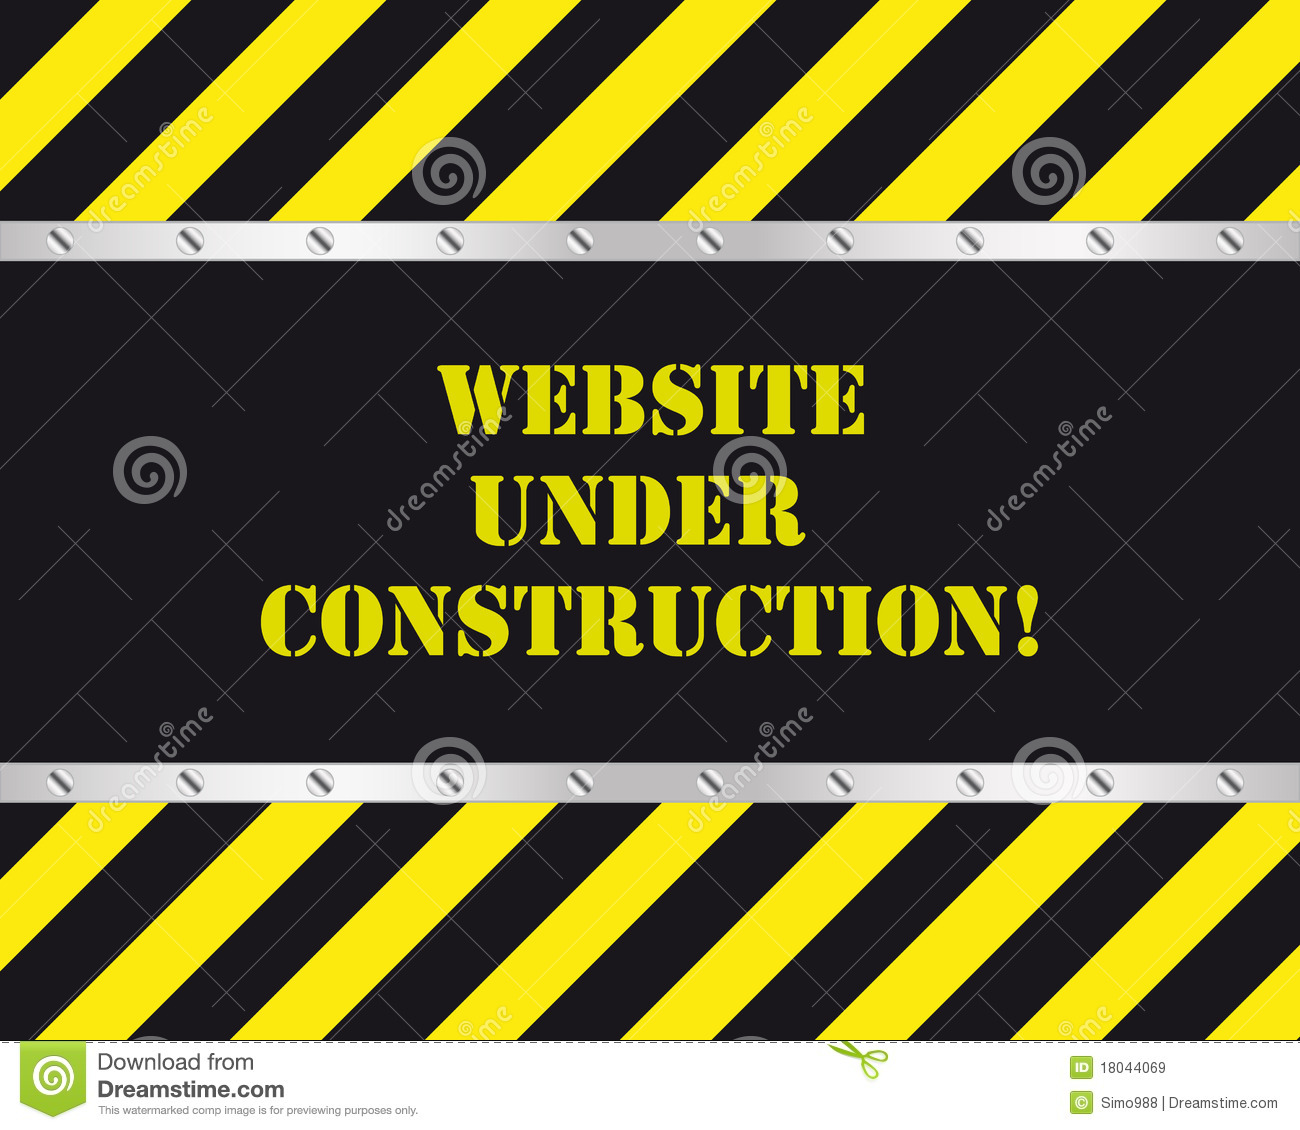 under construction website background template stock illustration 18761872. Black Bedroom Furniture Sets. Home Design Ideas